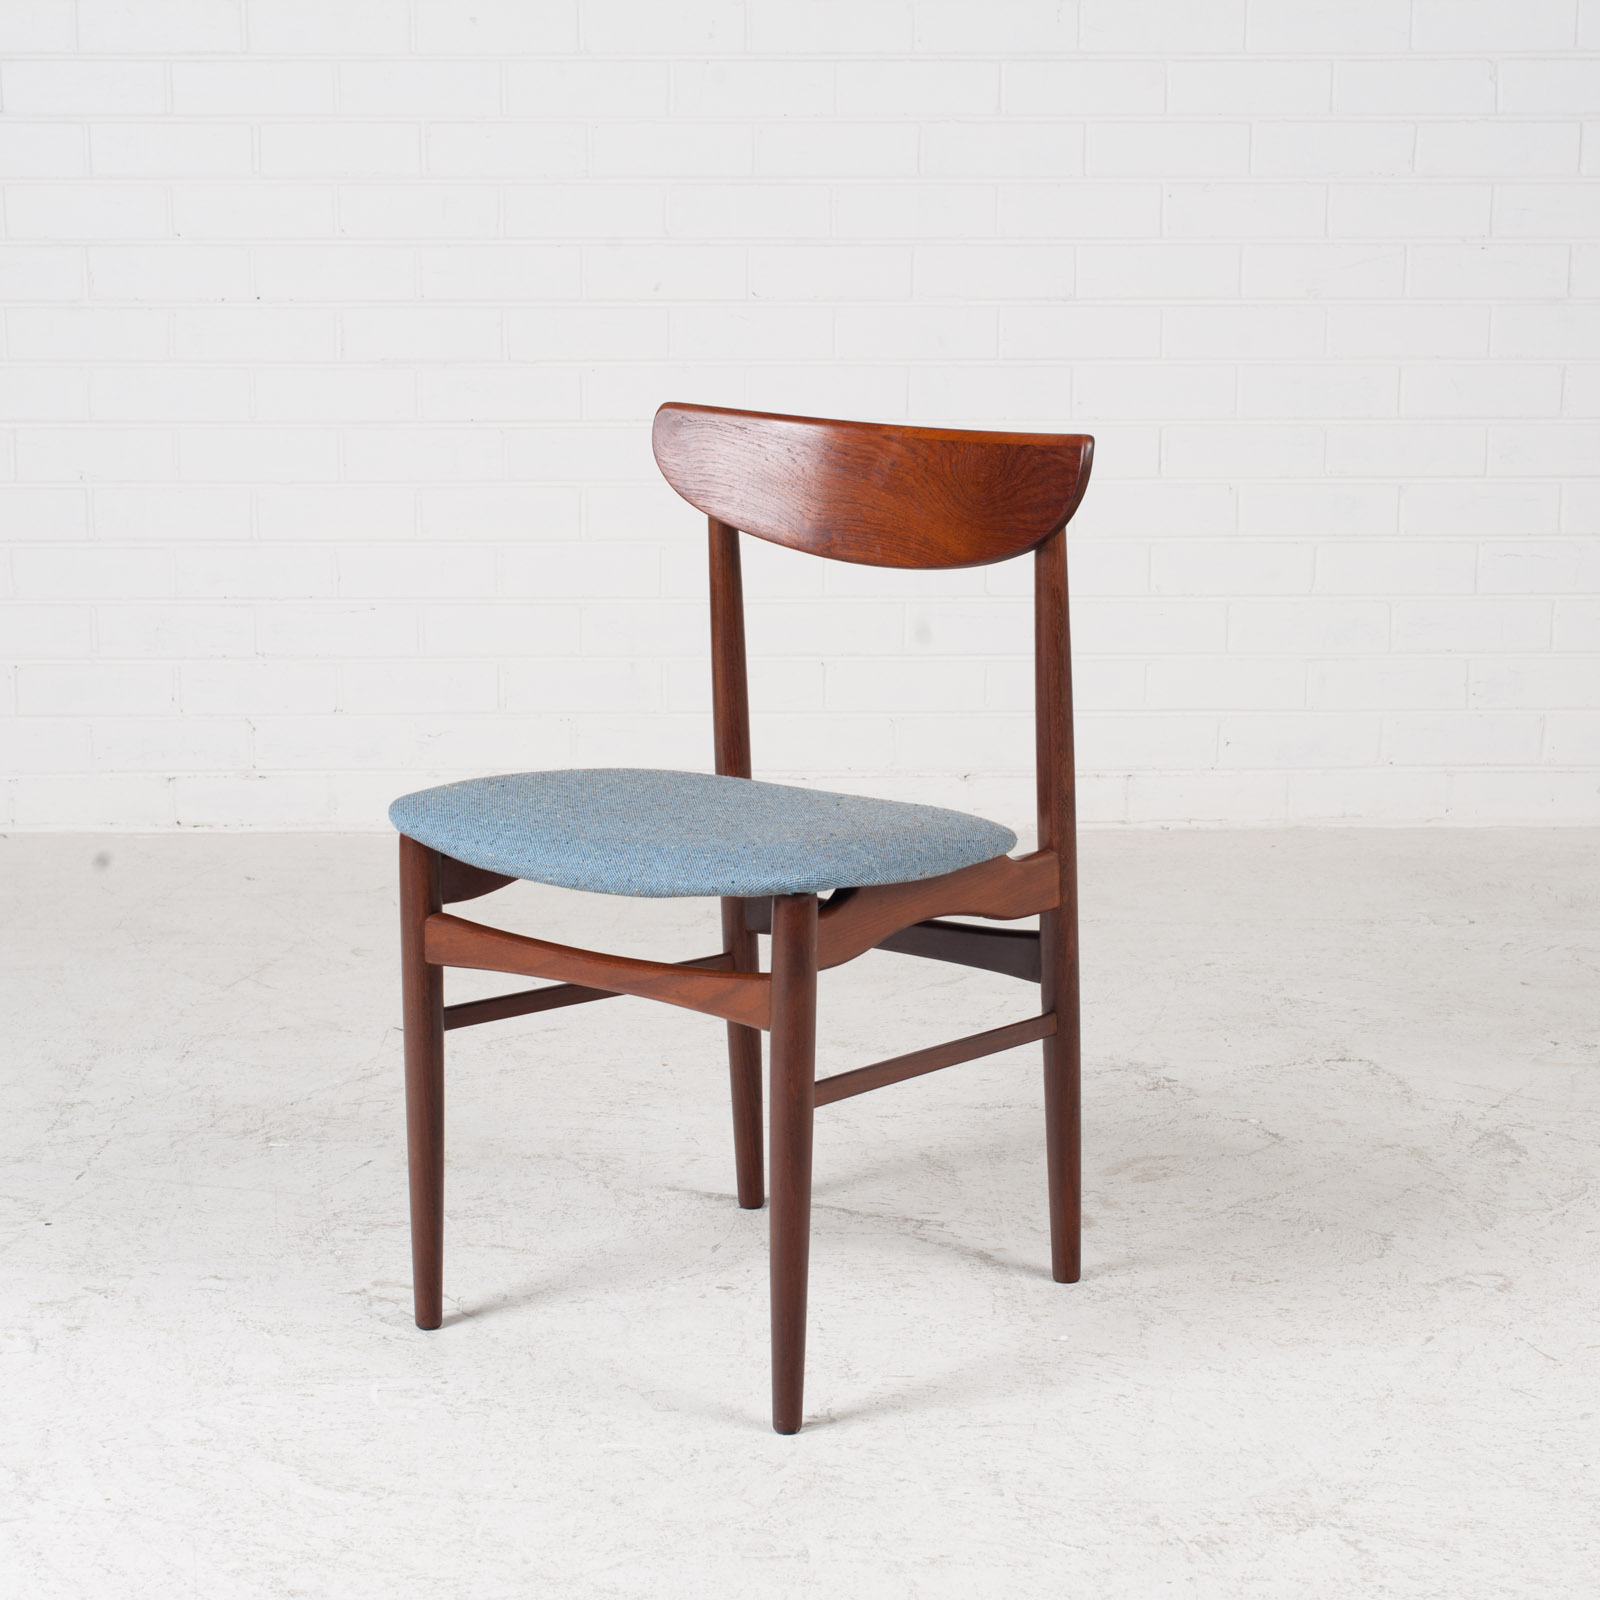 Set Of 4 Curved Lip Dining Chairs In Teak 1960s Denmark 02